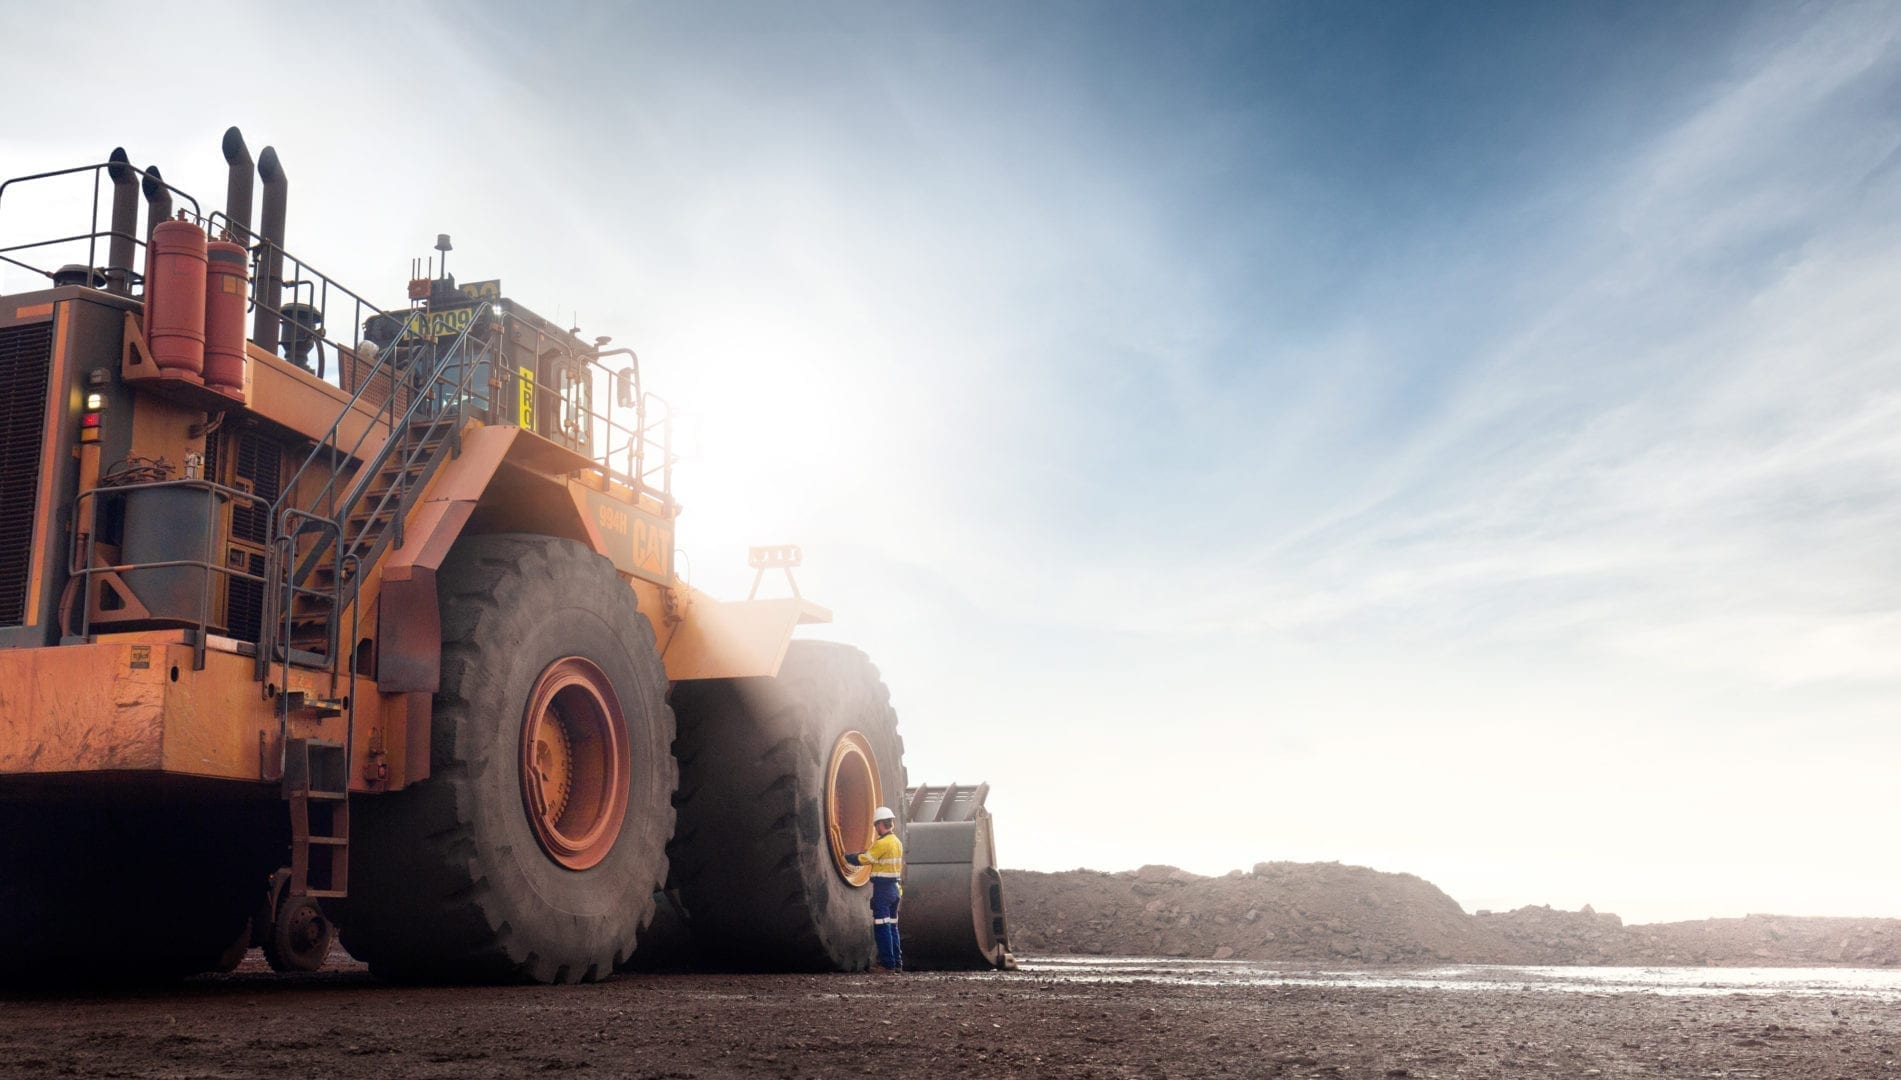 Kal Tire Mining exceeds expectations